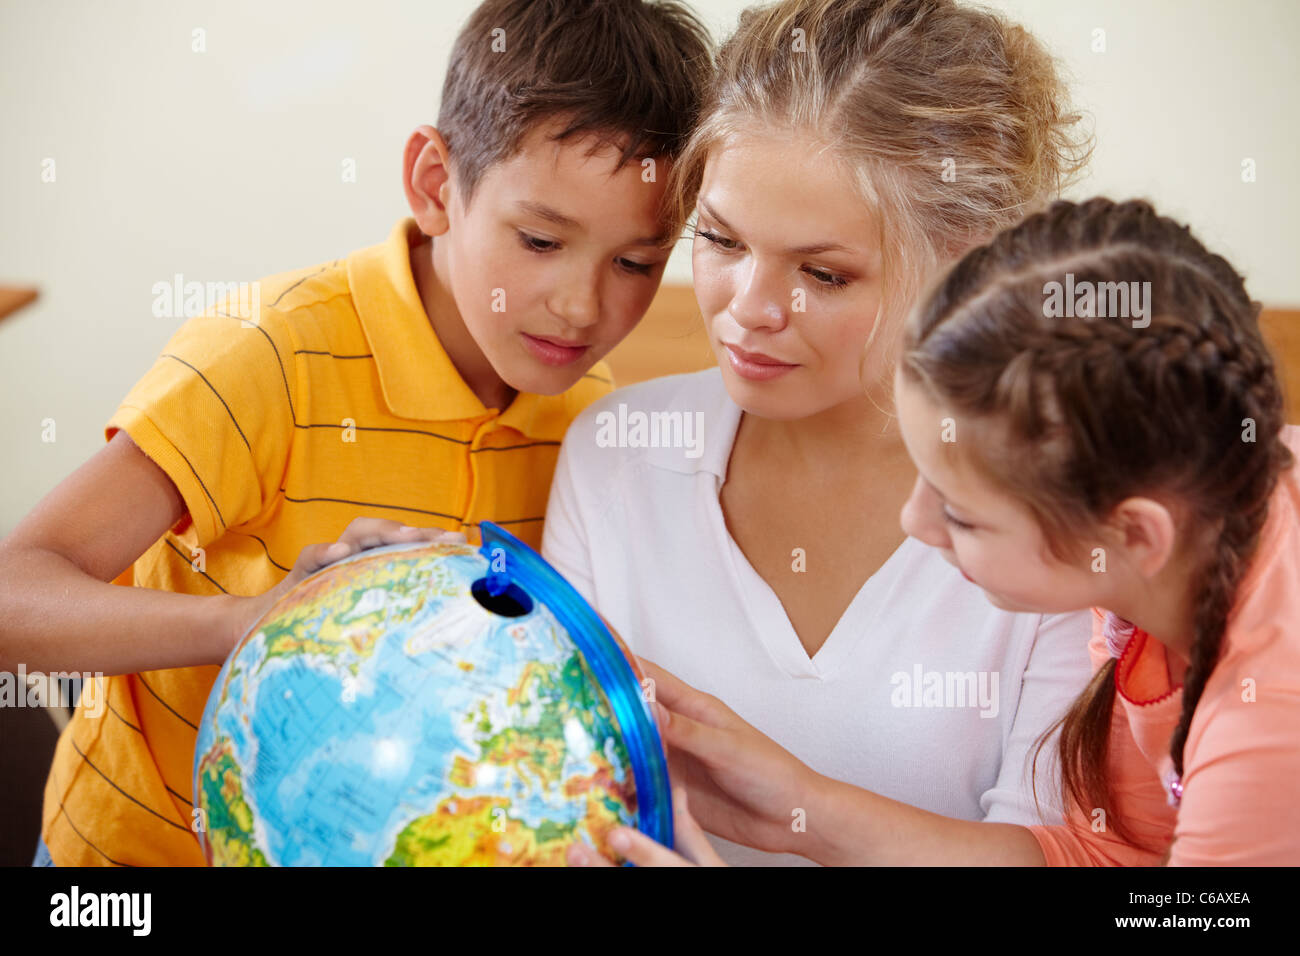 Portrait of cute classmates and teacher looking at globe at geography lesson - Stock Image